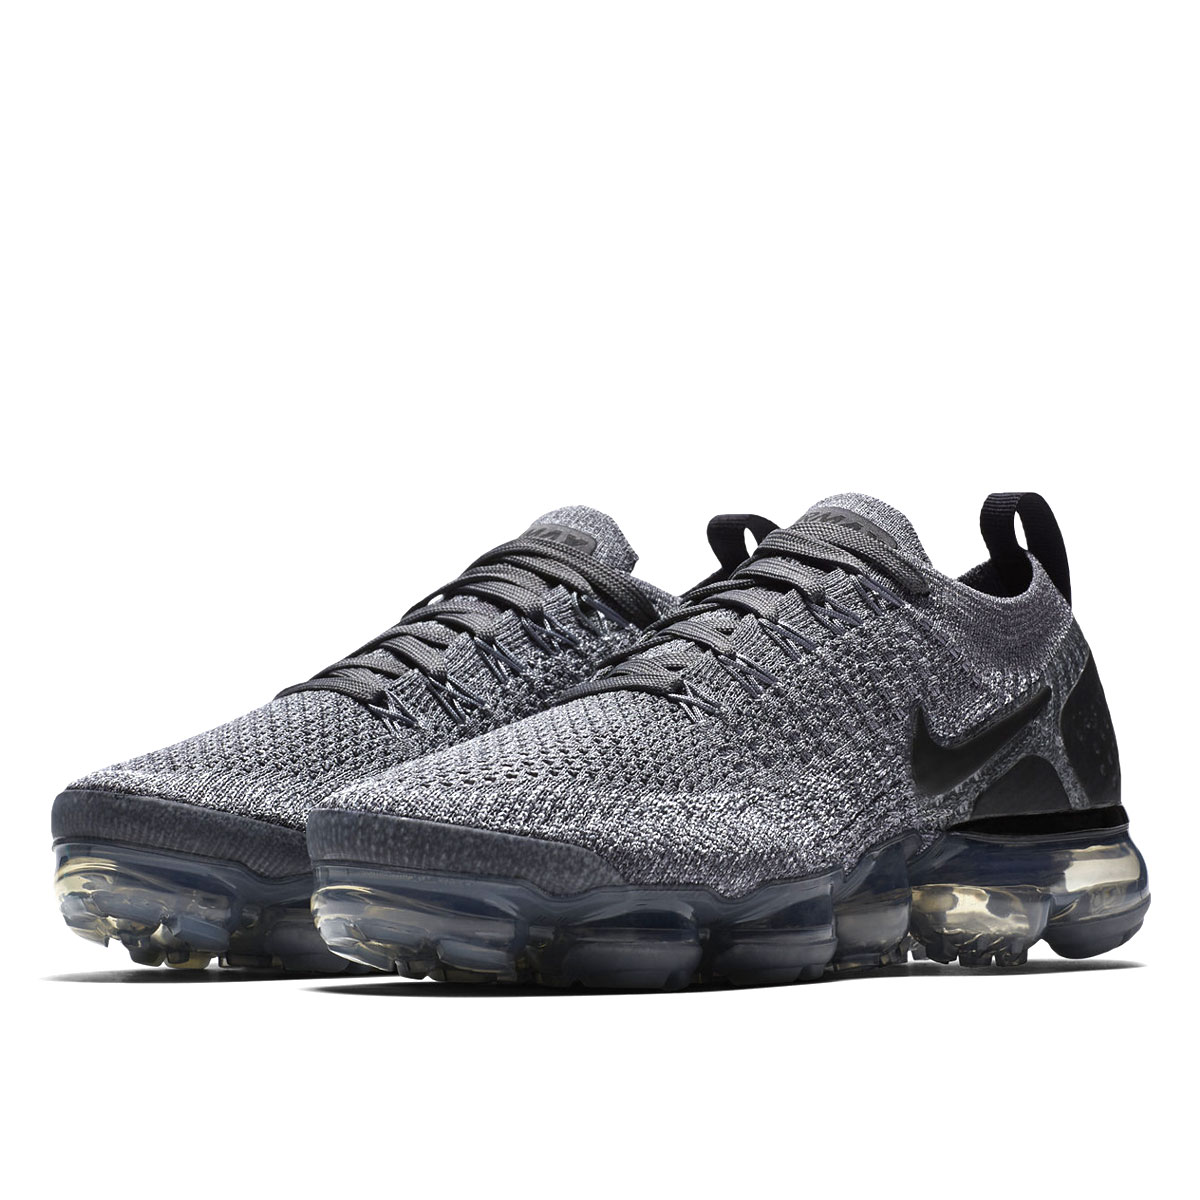 detailed pictures 9123f 326da NIKE WMNS AIR VAPORMAX FLYKNIT 2 Nike women vapor max fried food knit DARK  GREY/WOLF GREY 942,843-002